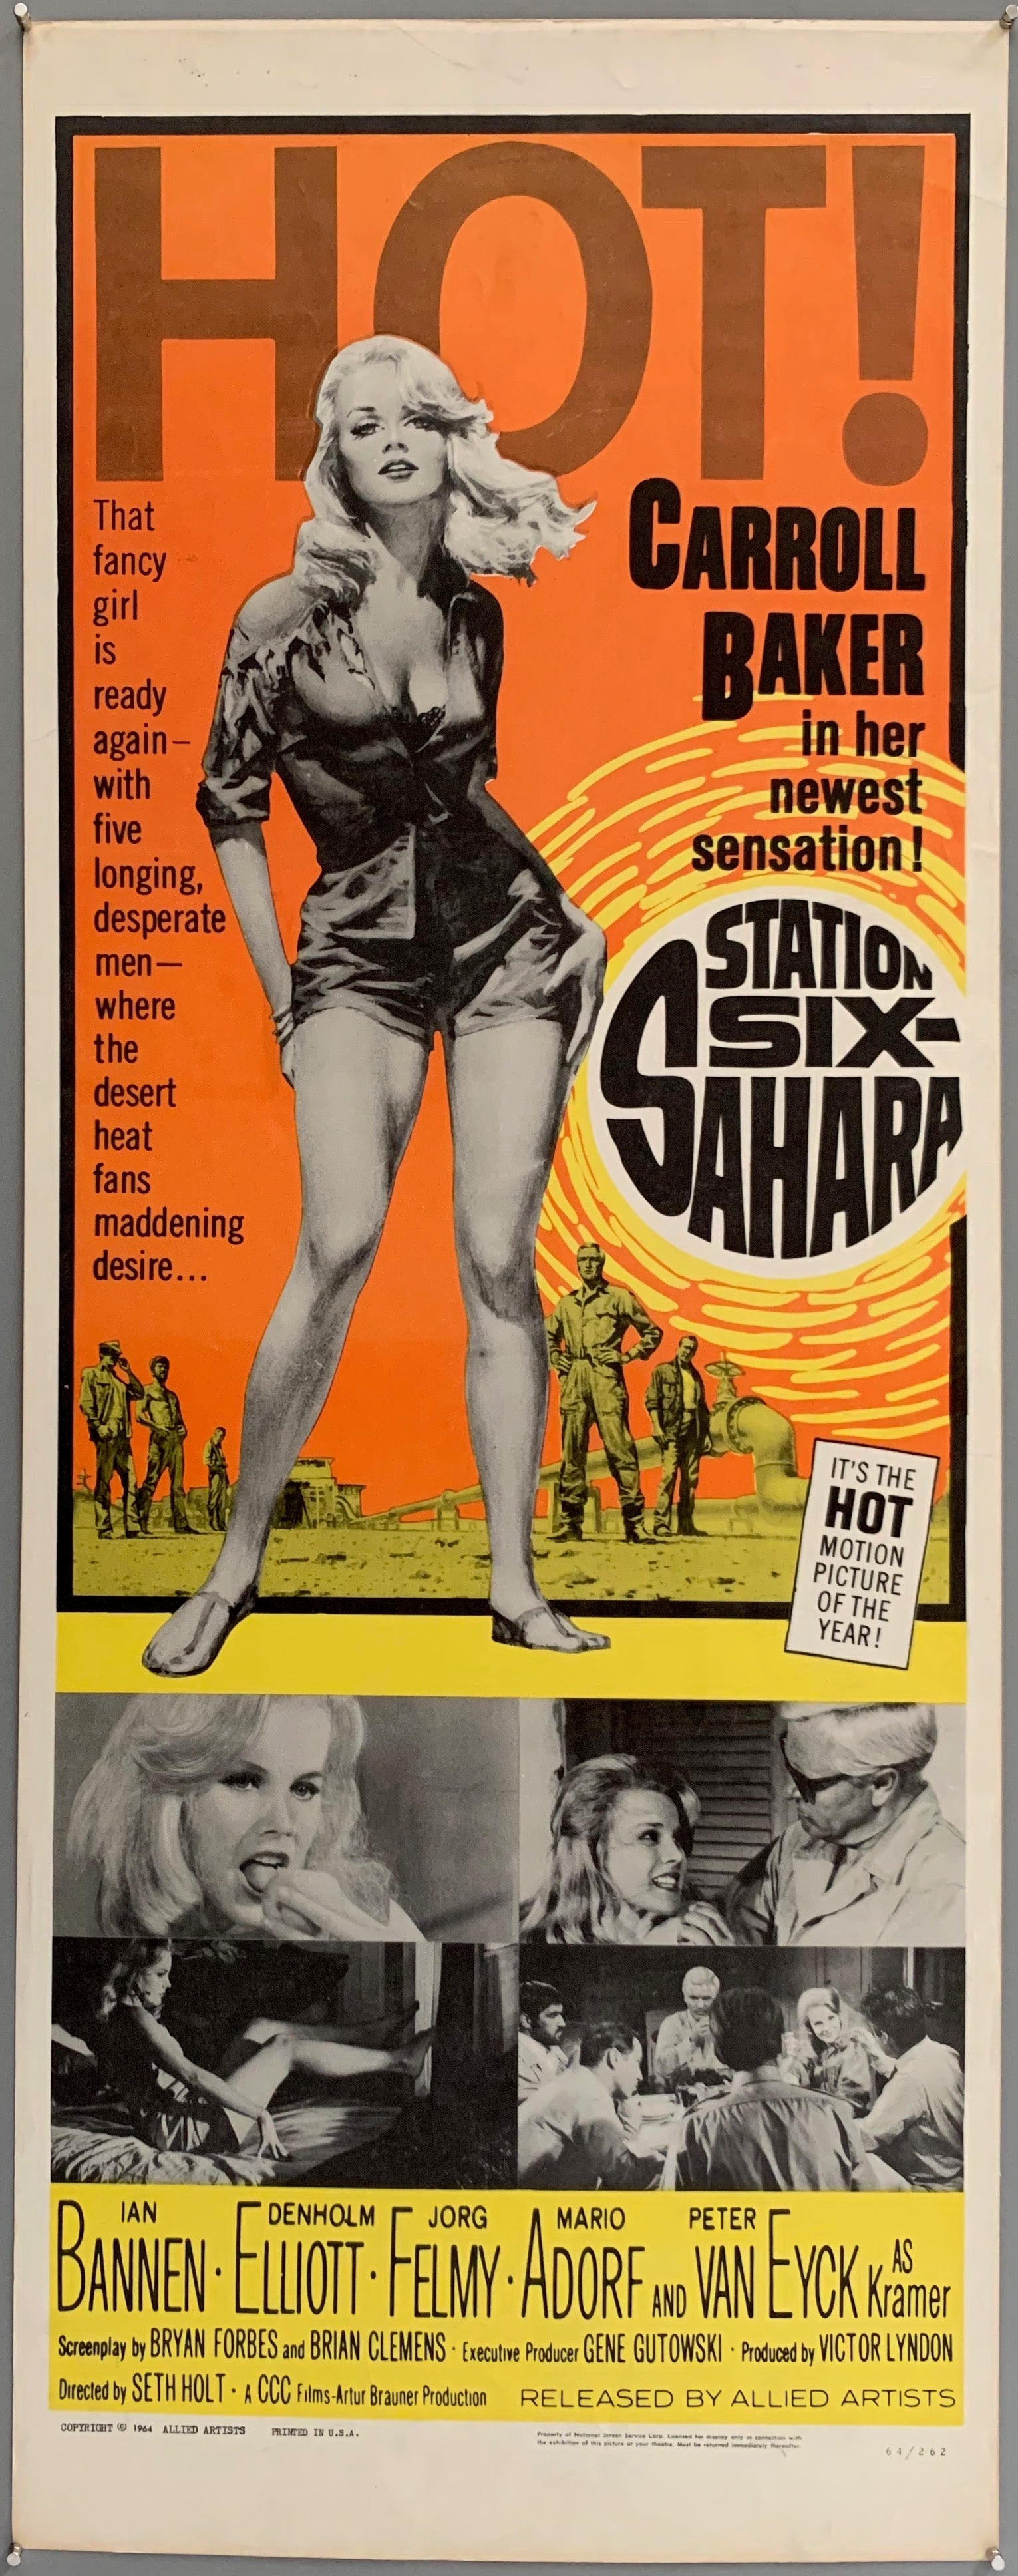 Station Six Sahara Poster